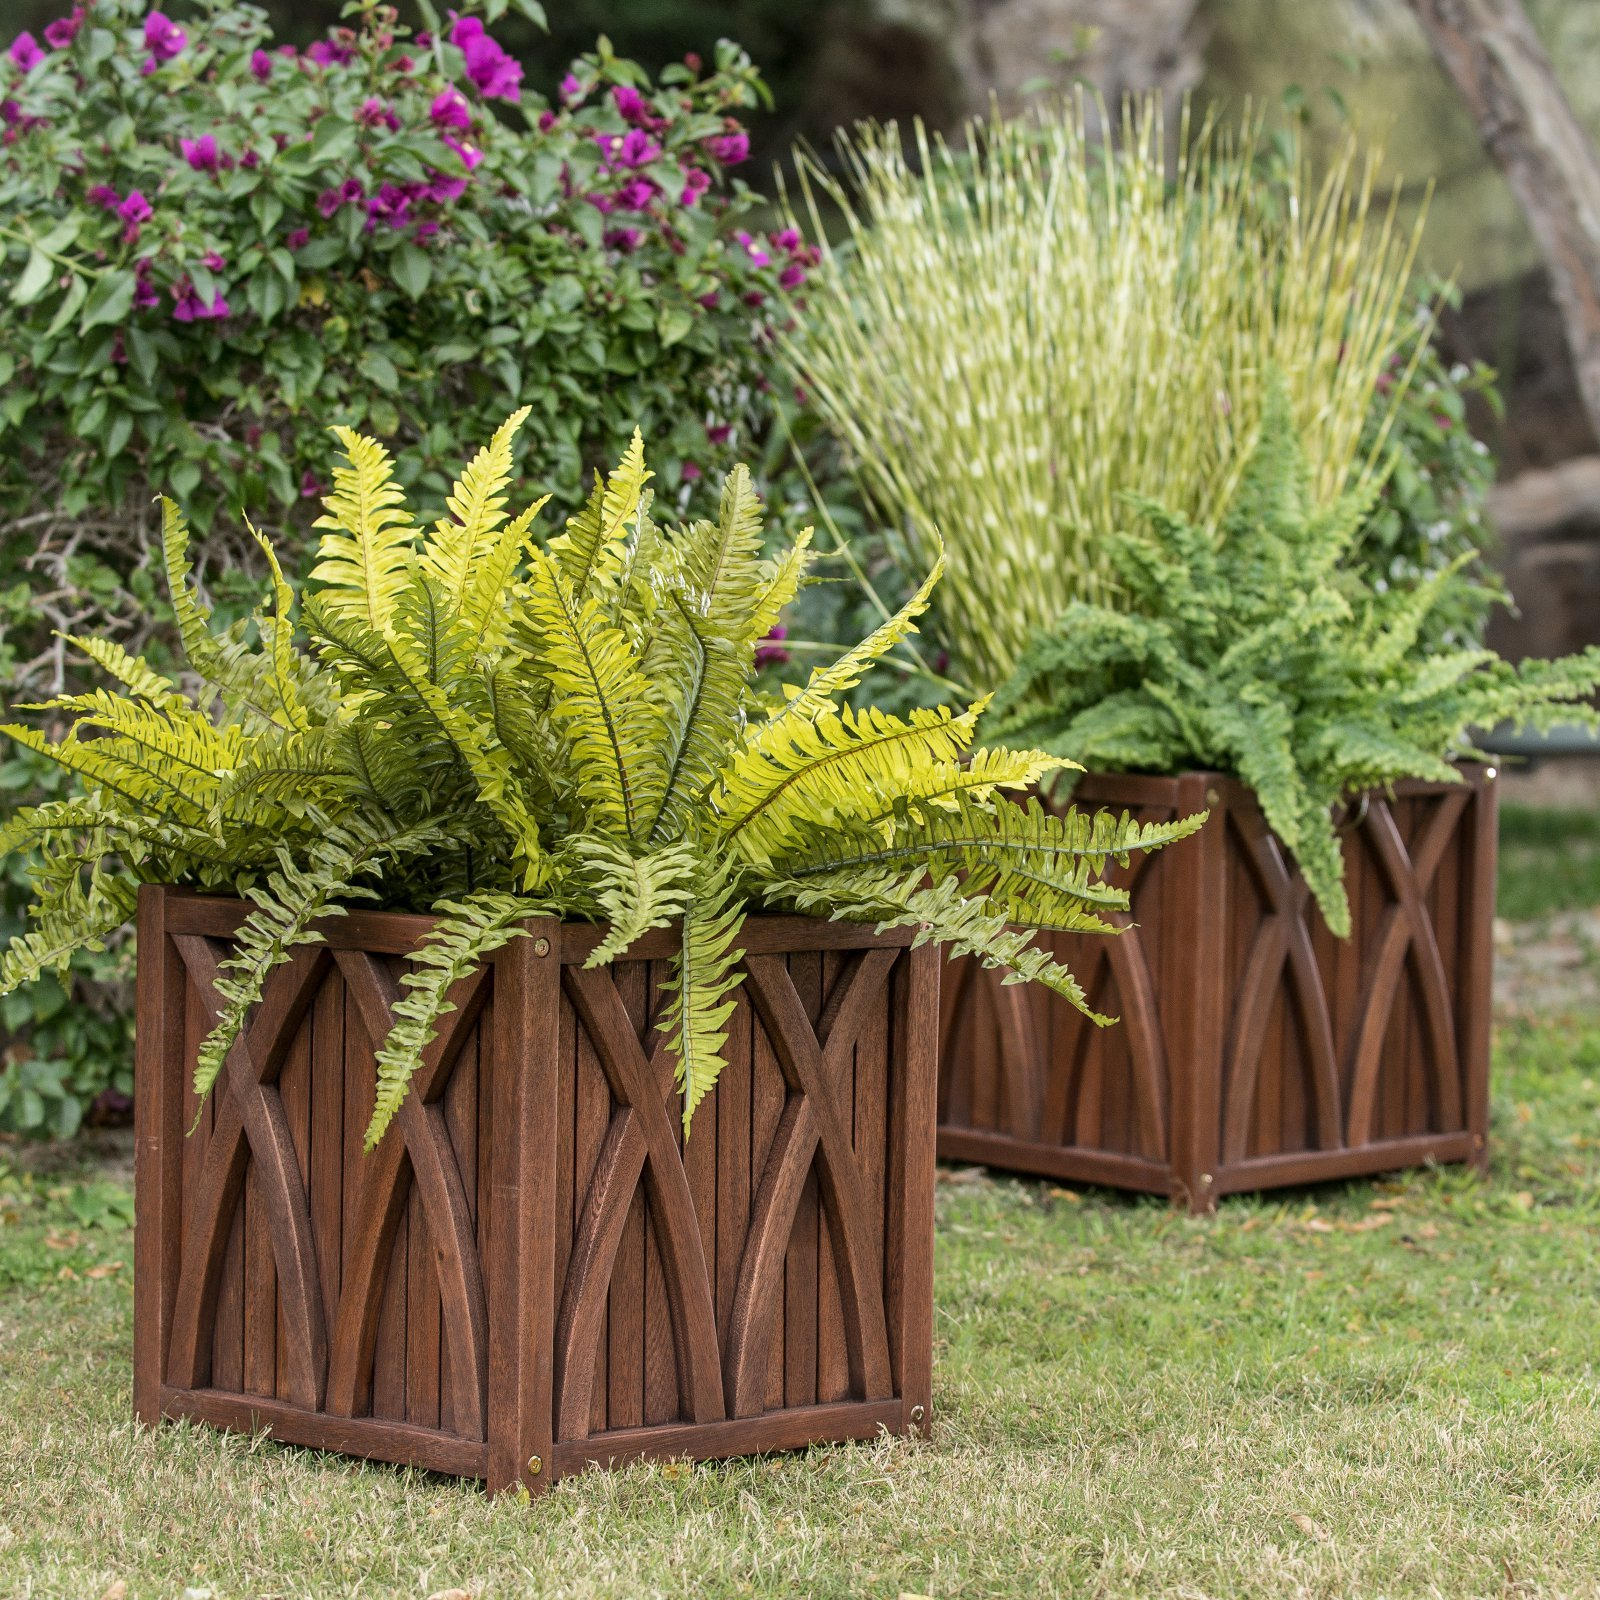 Set of 2 Brown Finish Eucalyptus Wood Patio Pots Planters Outdoor Gardening Planting 15x15